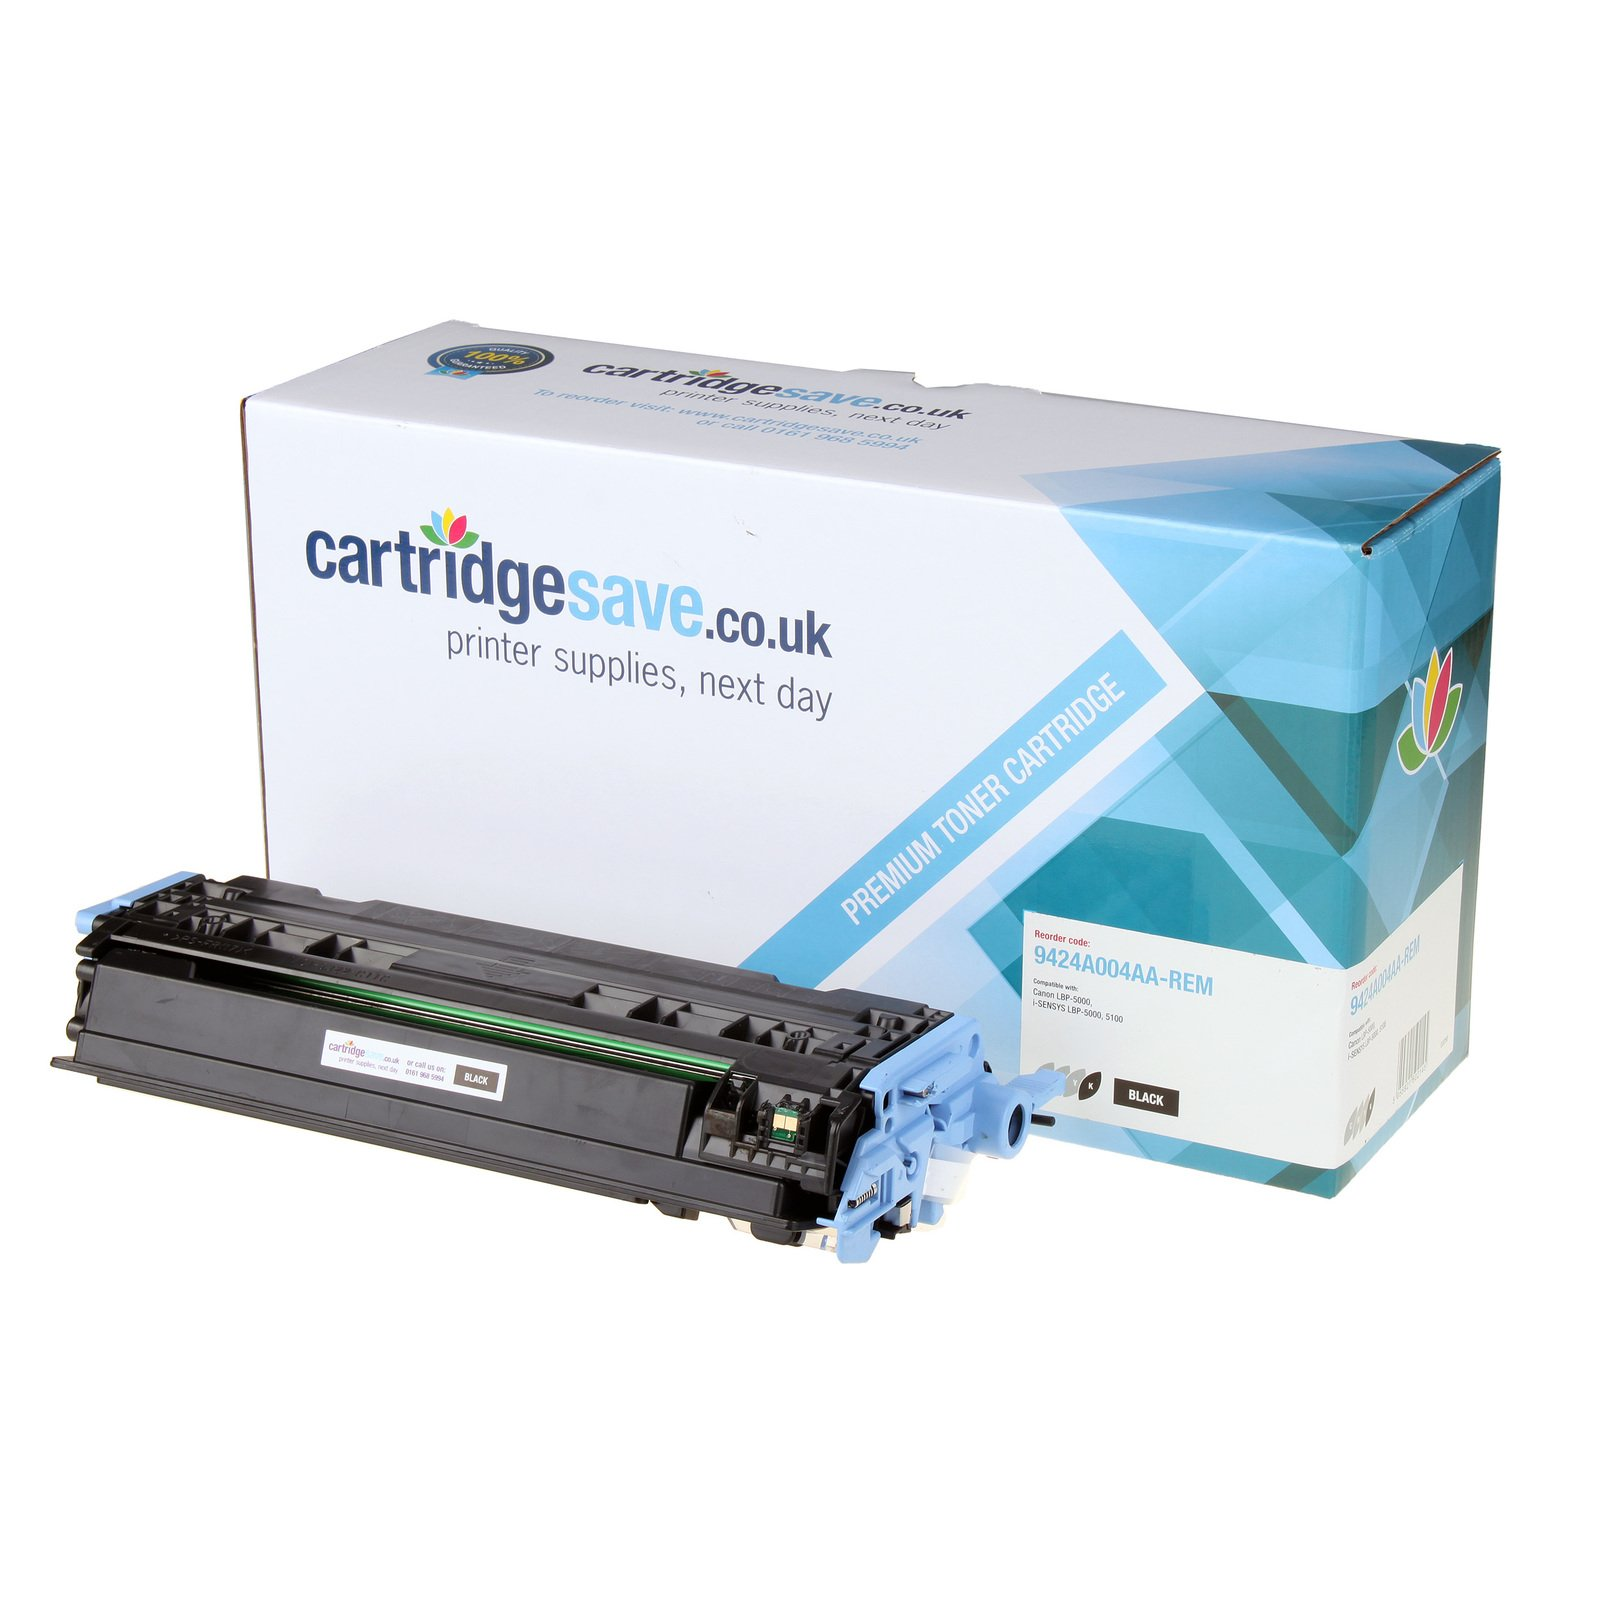 Compatible Black Canon 707 Toner Cartridge (Replaces Canon 9424A004AA Laser Printer Cartridge)